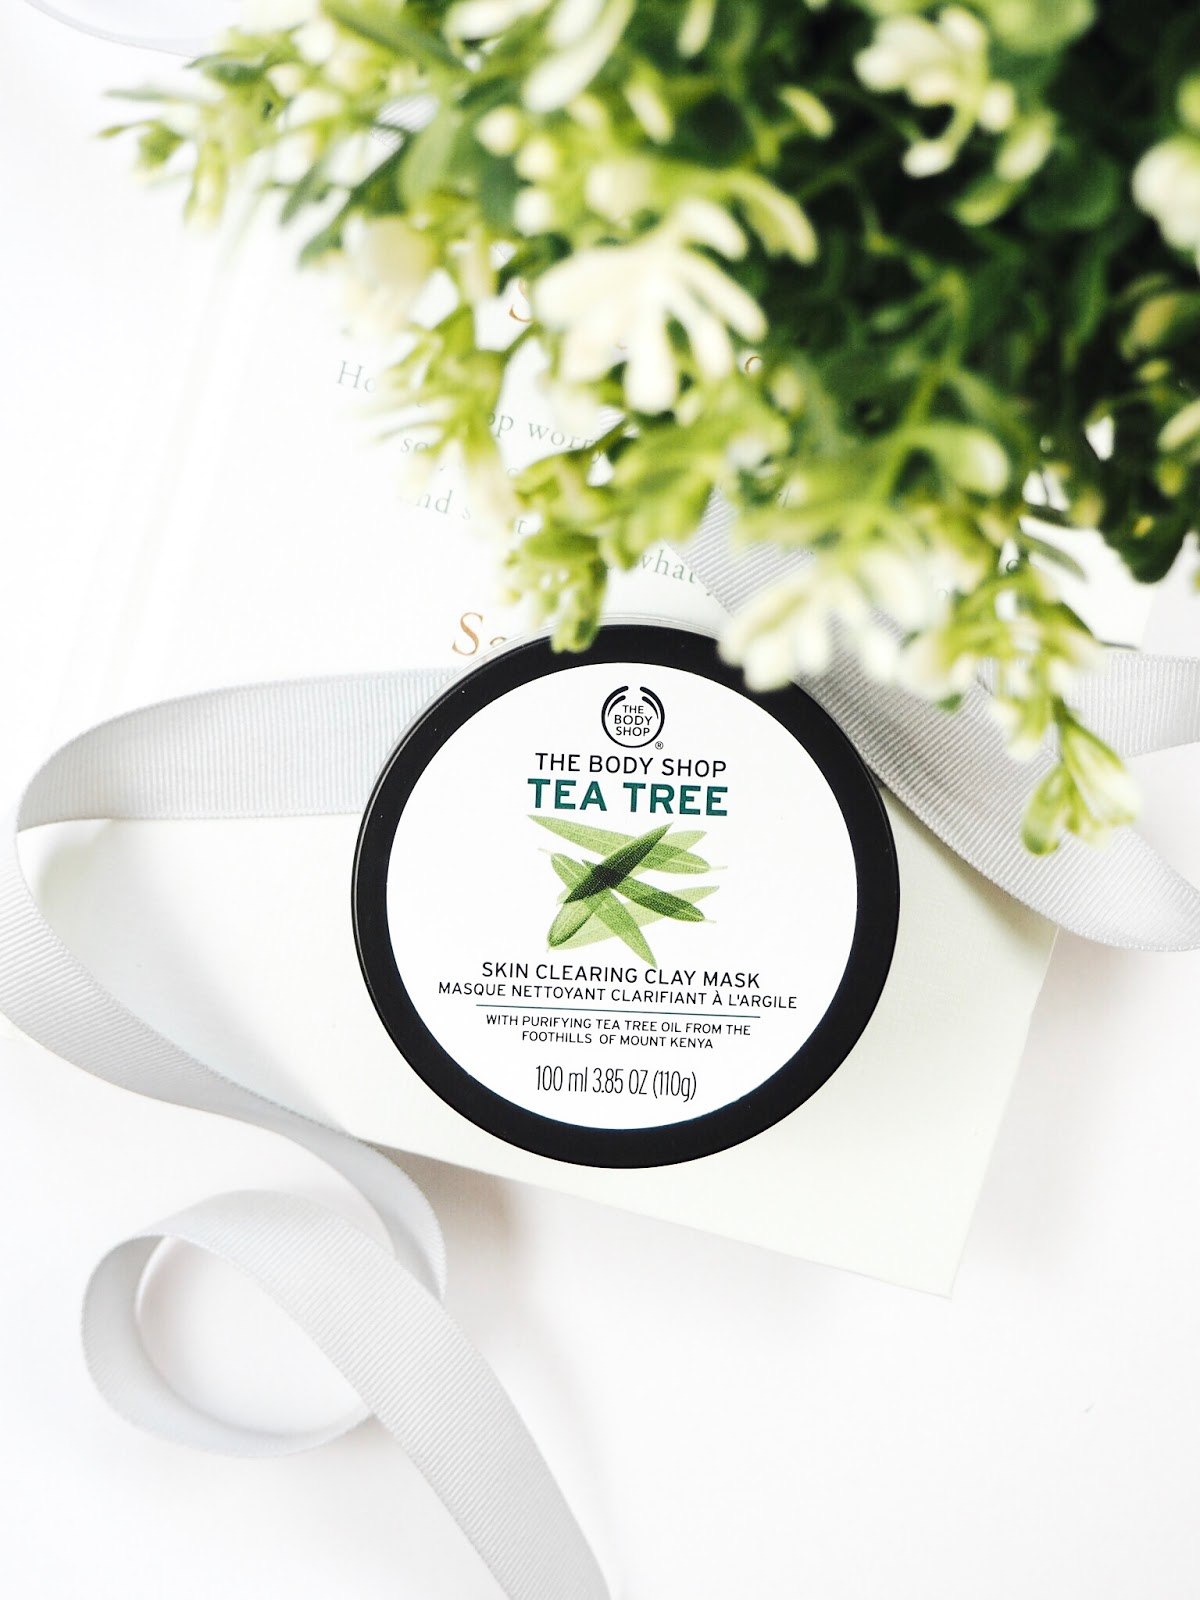 The Body Shop's Tea Tree Skin Clearing Clay Face Mask flatlay on a book with silver ribbon and an IKEA fake plant with a white background